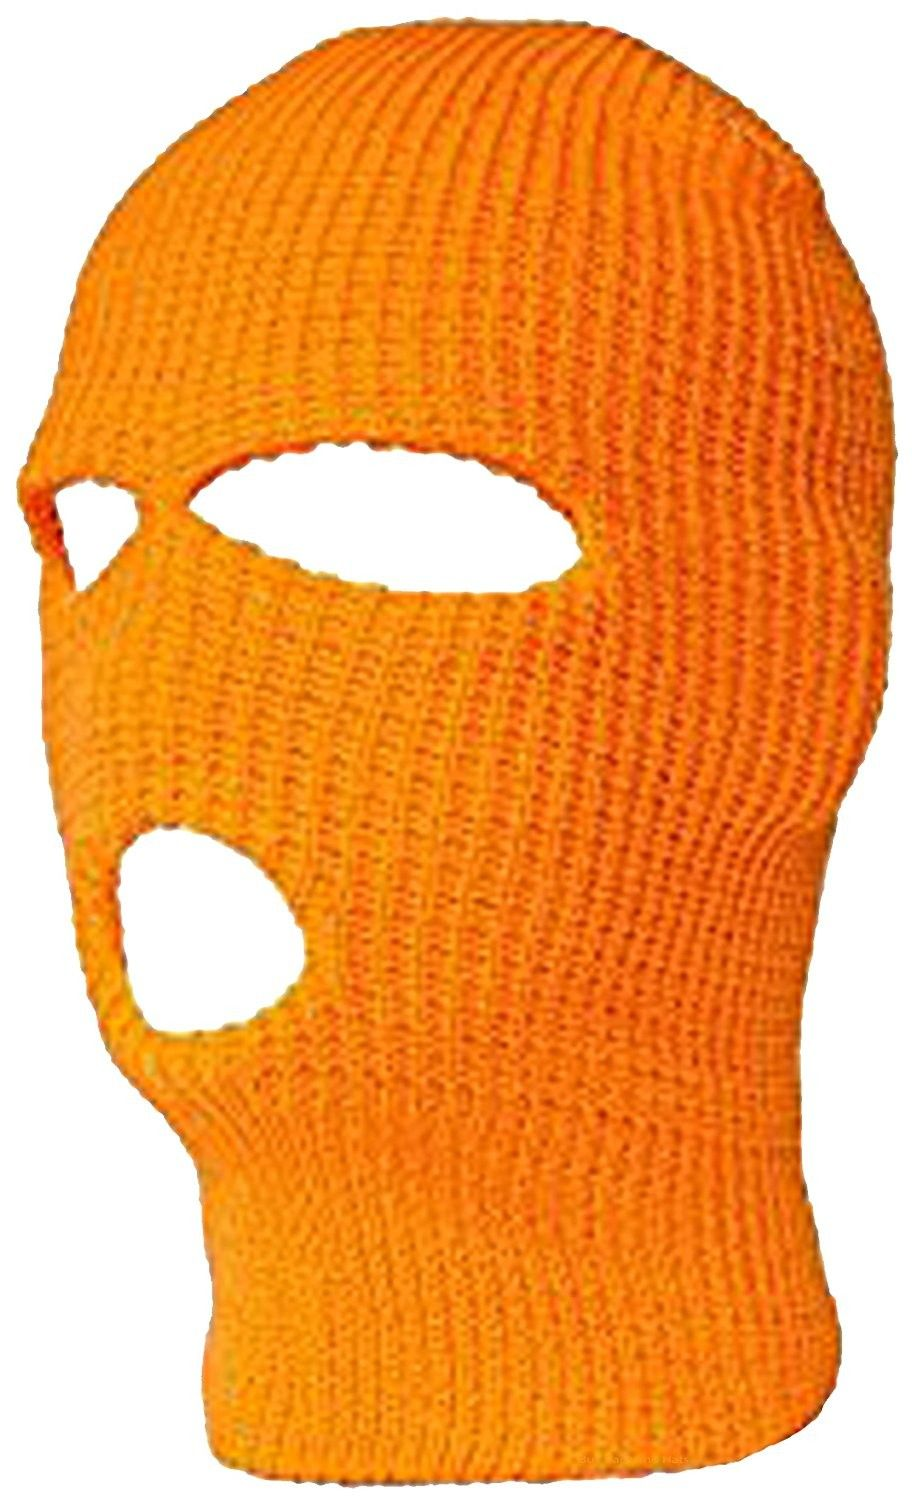 ORANGE FACE MASK Hi-Vis Full Skull Cap Beanie Hunting Safety Winter -  C112O9XQN0L - Hats   Caps 433b595c653